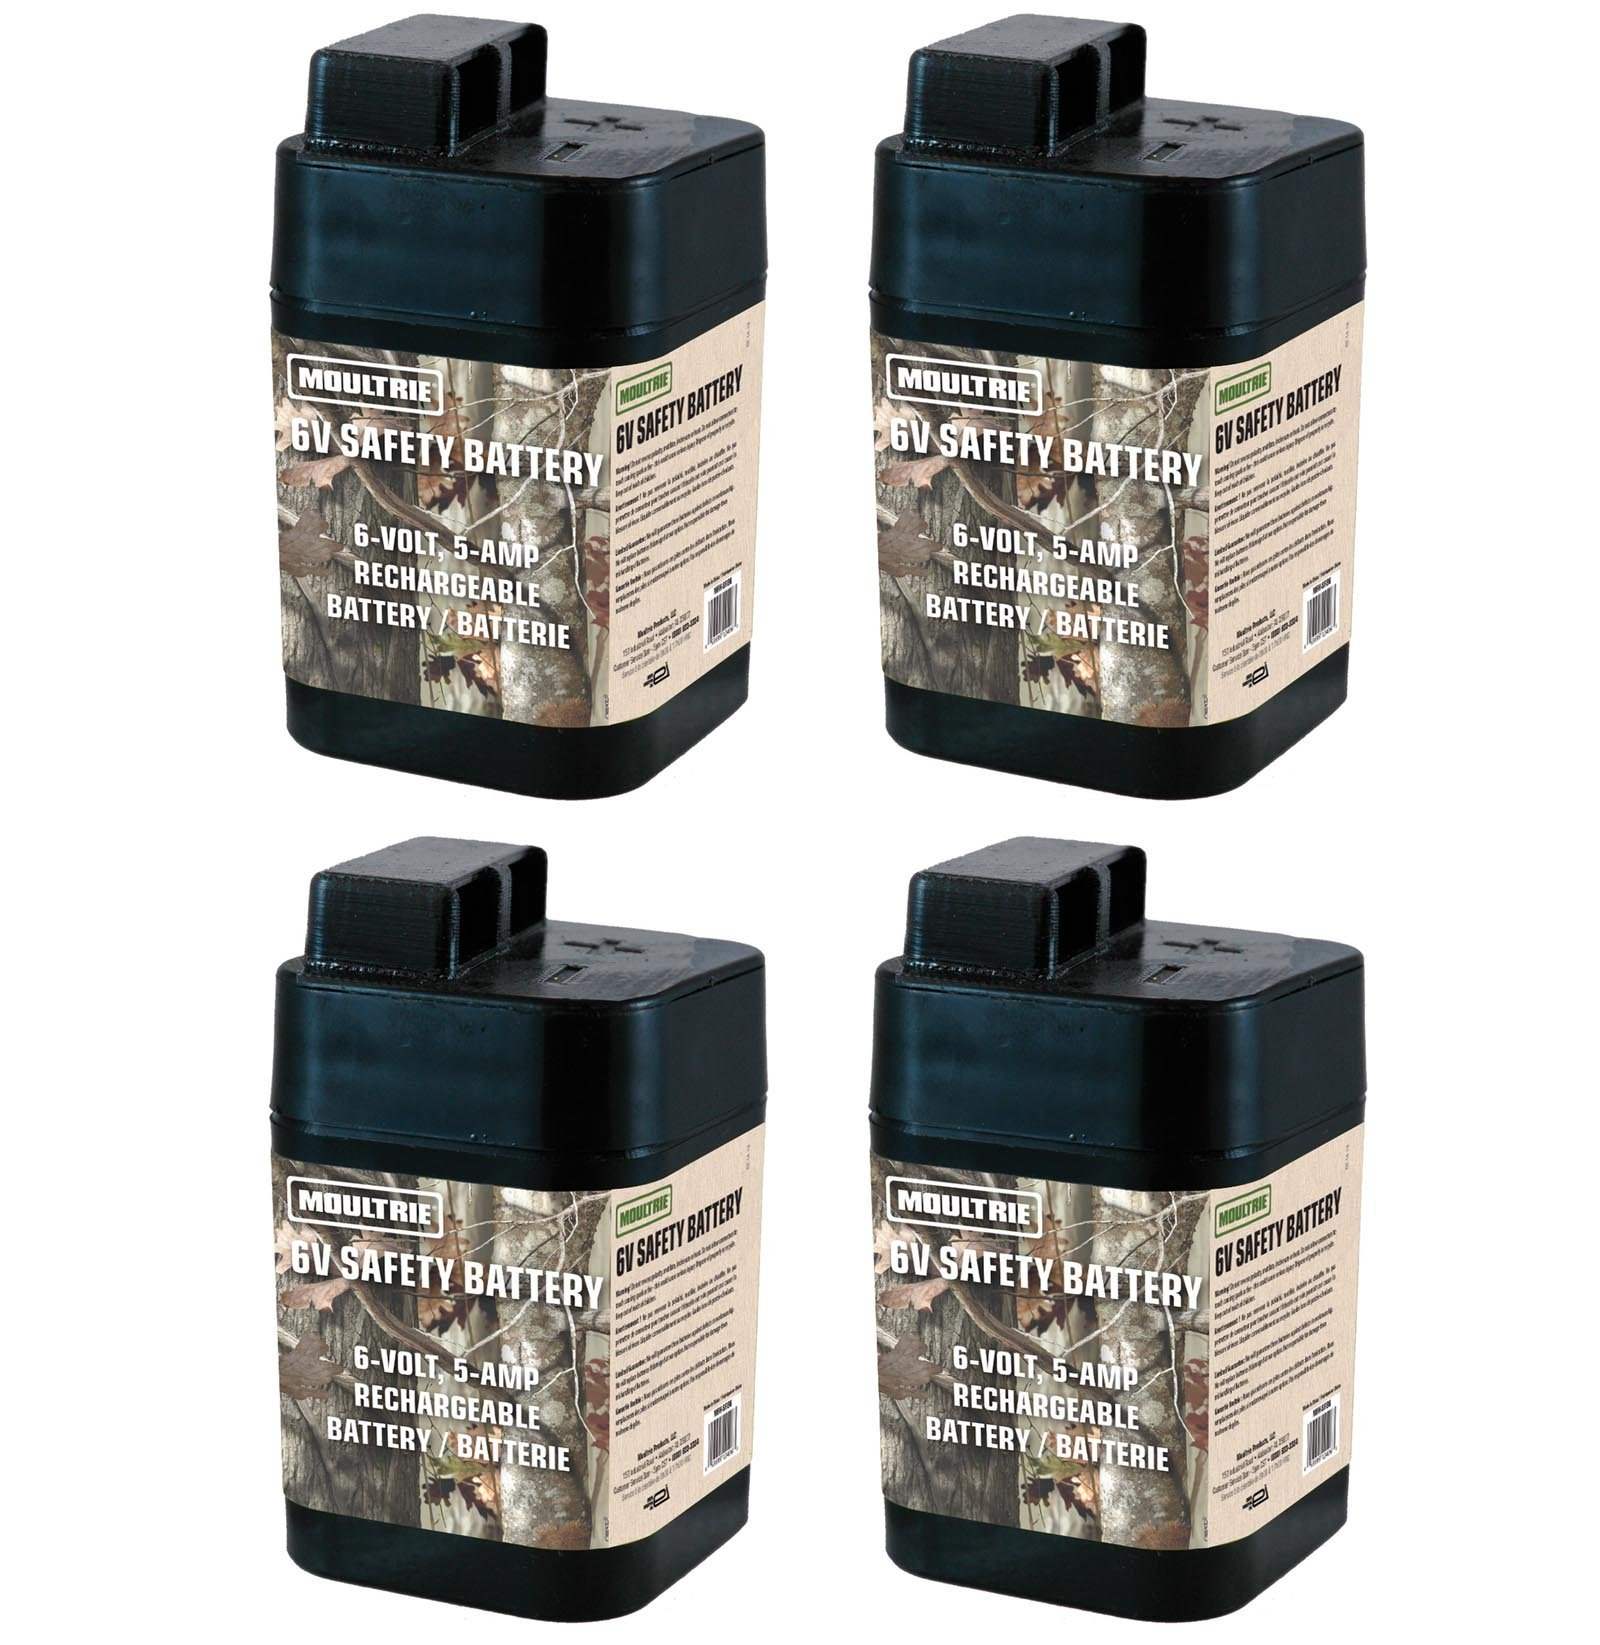 4 MOULTRIE 6 Volt Rechargeable Safety Batteries for Automatic Deer Feeders |SRB6 by Moultrie